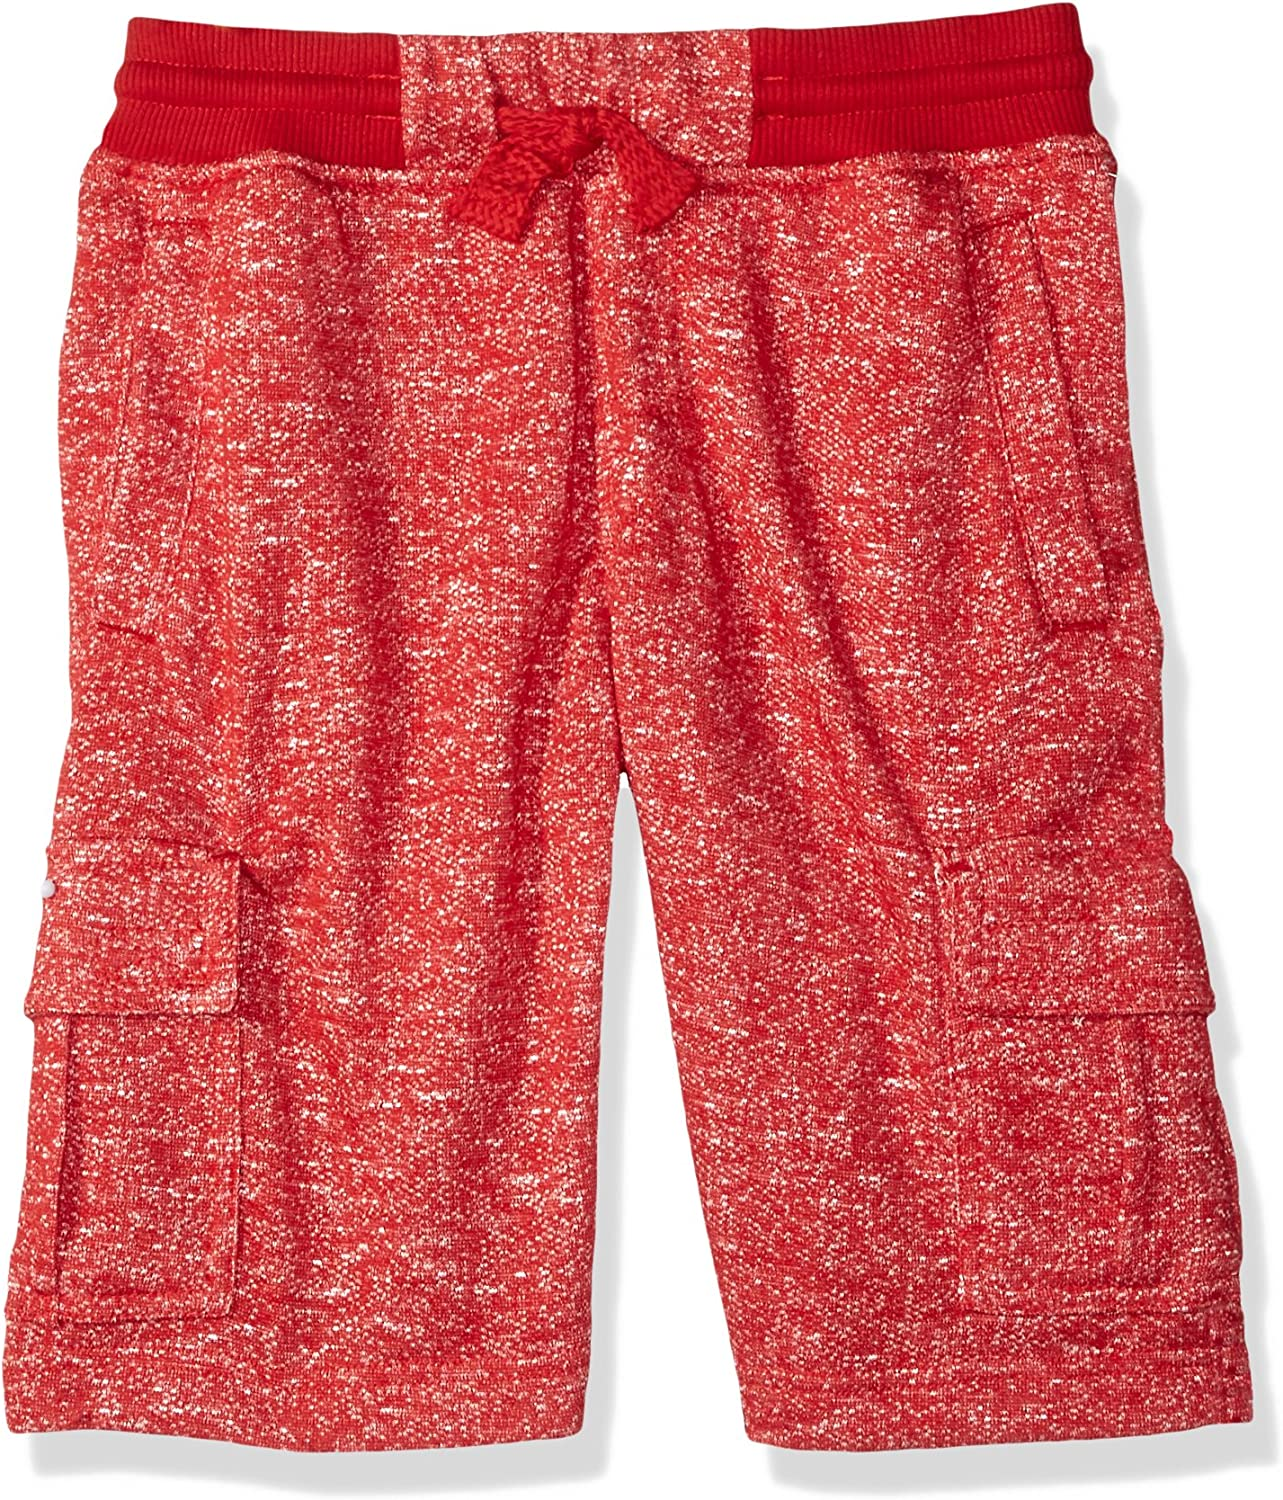 Southpole Boys Big Basic Light Jogger Shorts in Marled French Terry